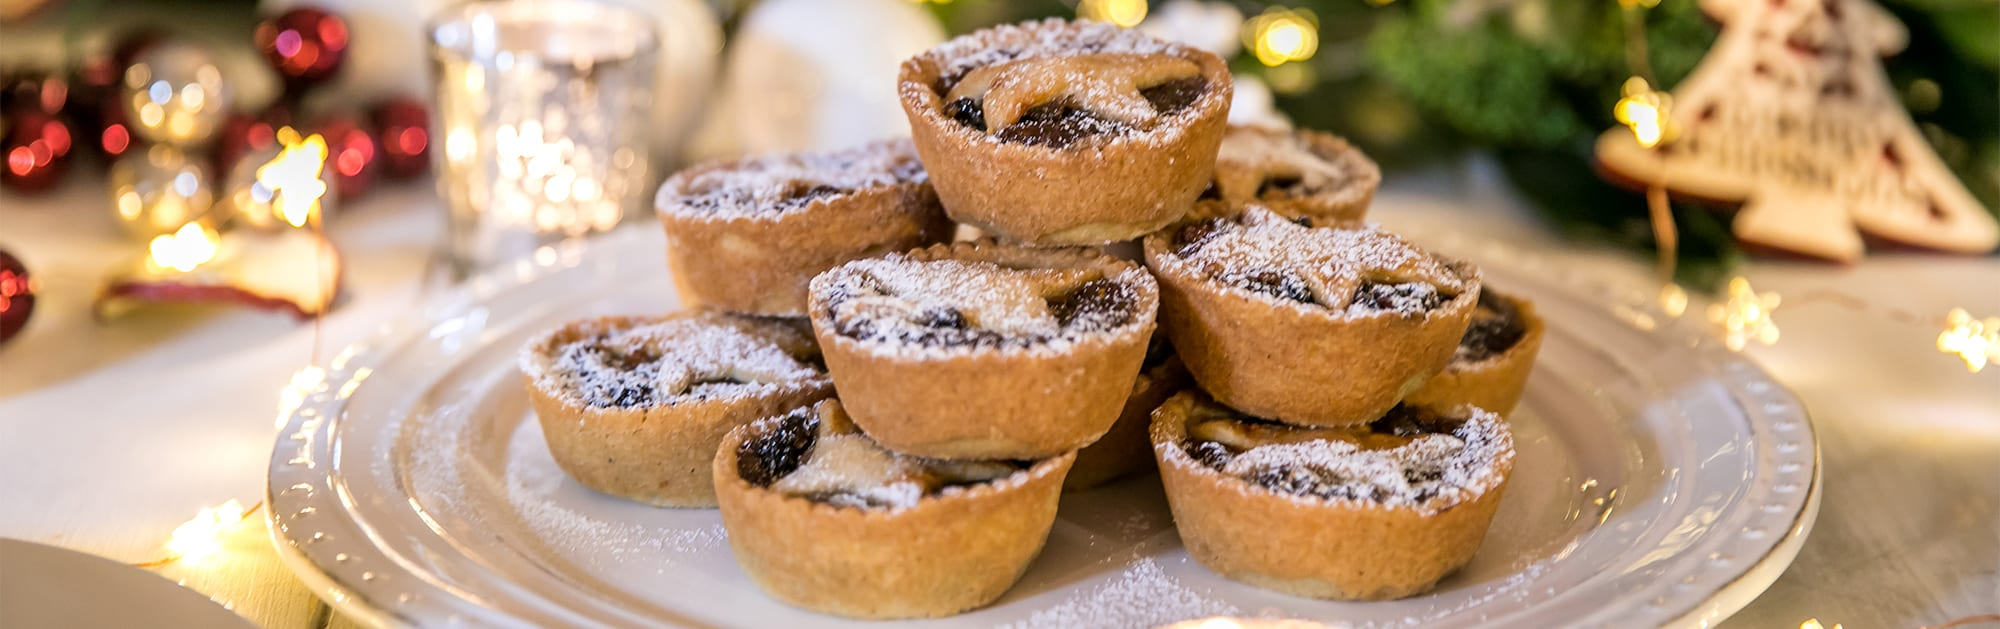 xmas2020_0001_Mince-pie-image-for-web-form